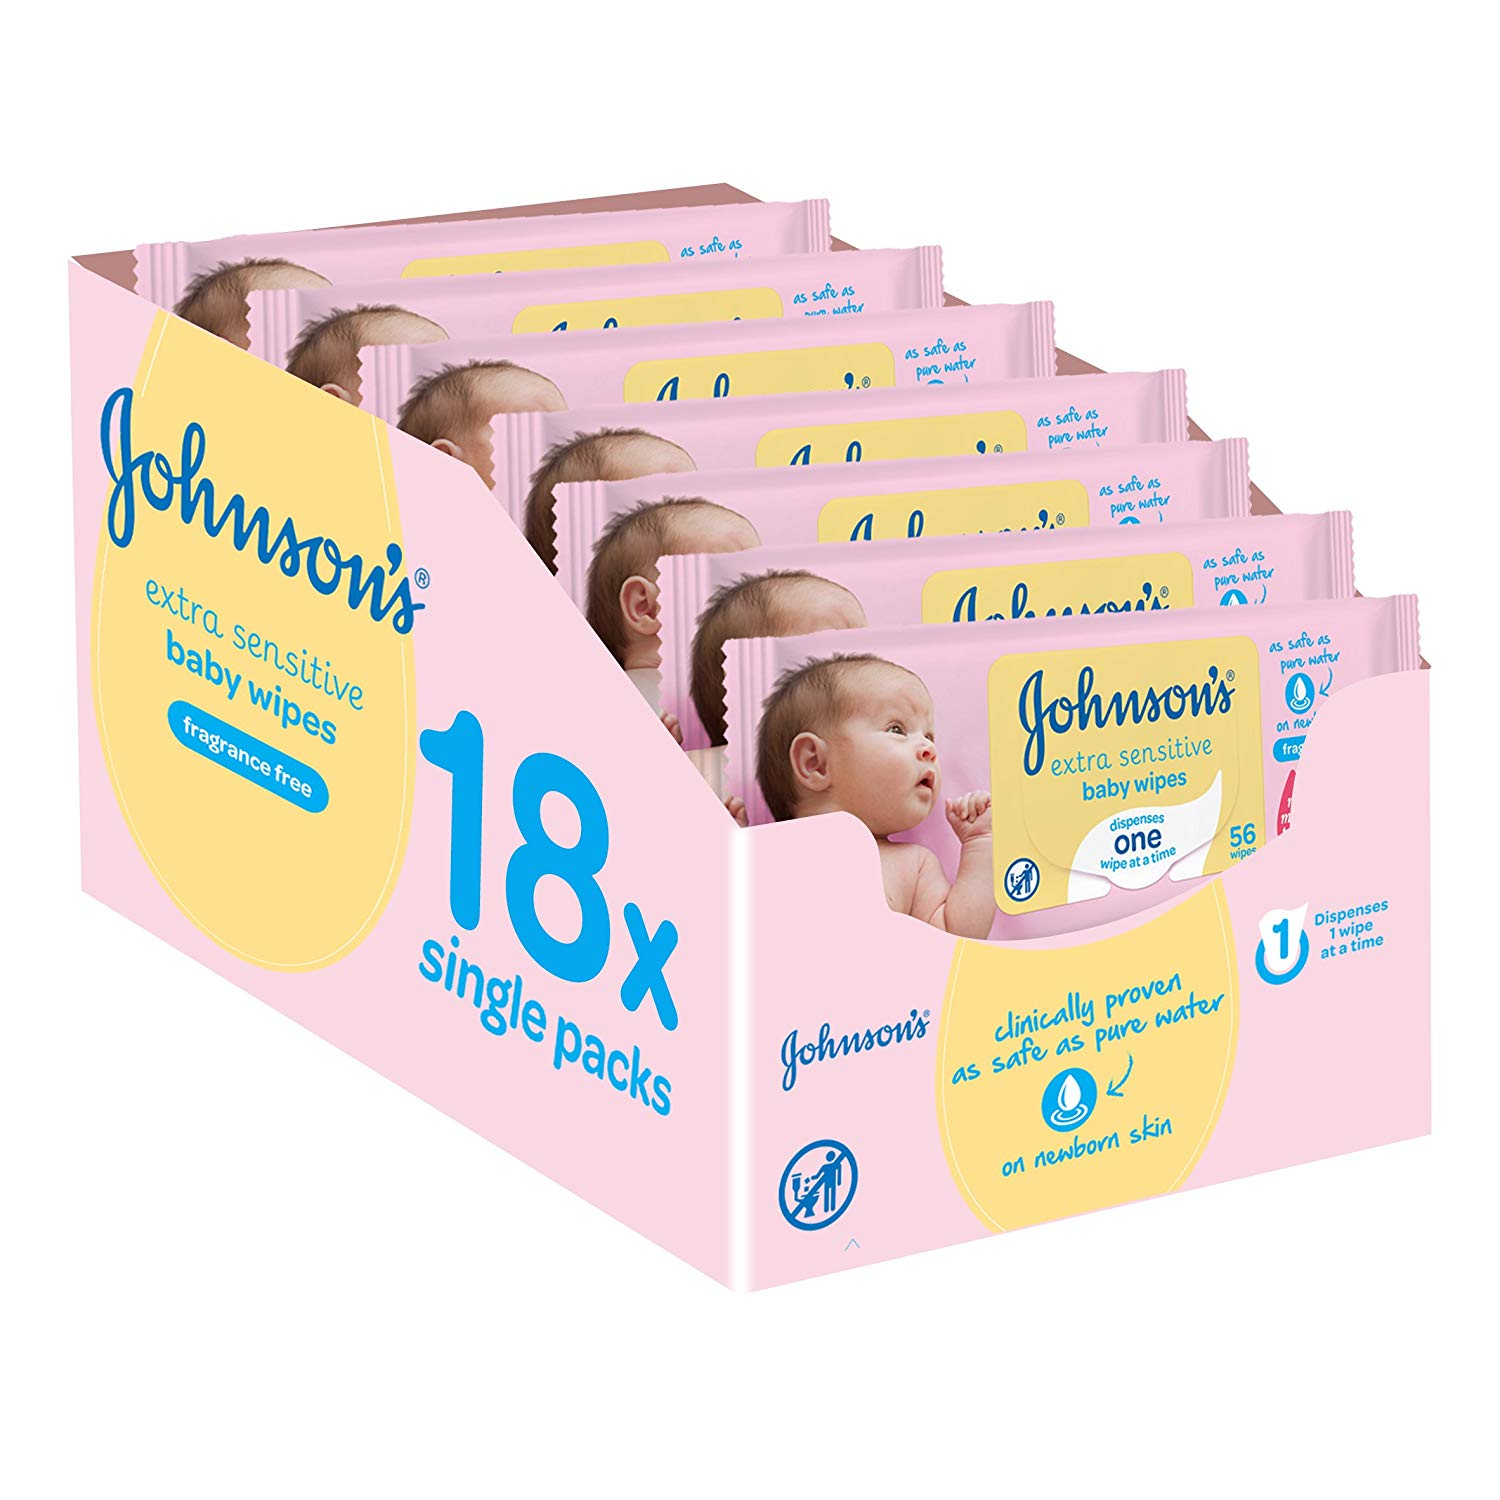 Johnson's Baby Extra Sensitive Fragrance Free Wipes – Pack of 18, 1008 Wipes